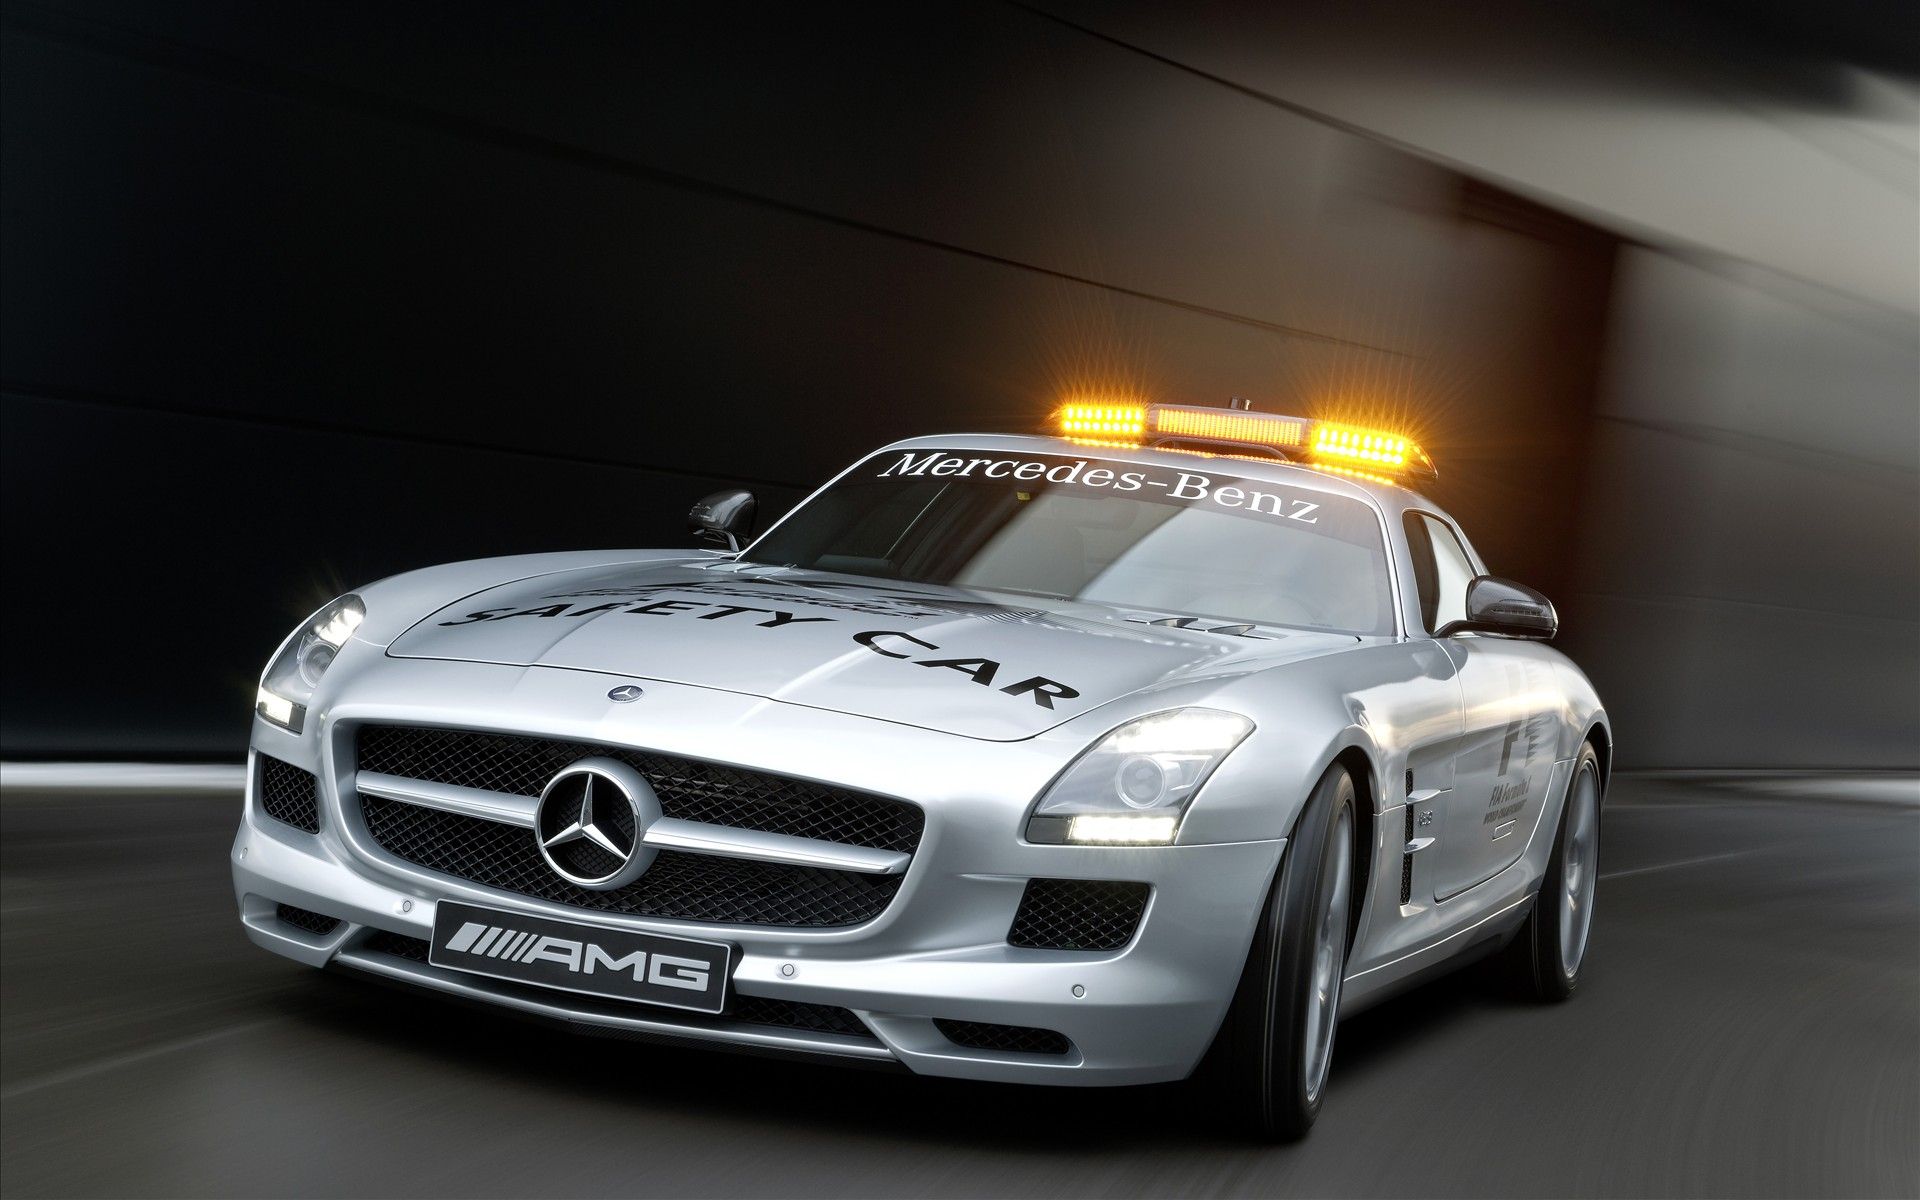 2010 mercedes benz safety car post in pixel of 1920 1200 for Is a mercedes benz a good car